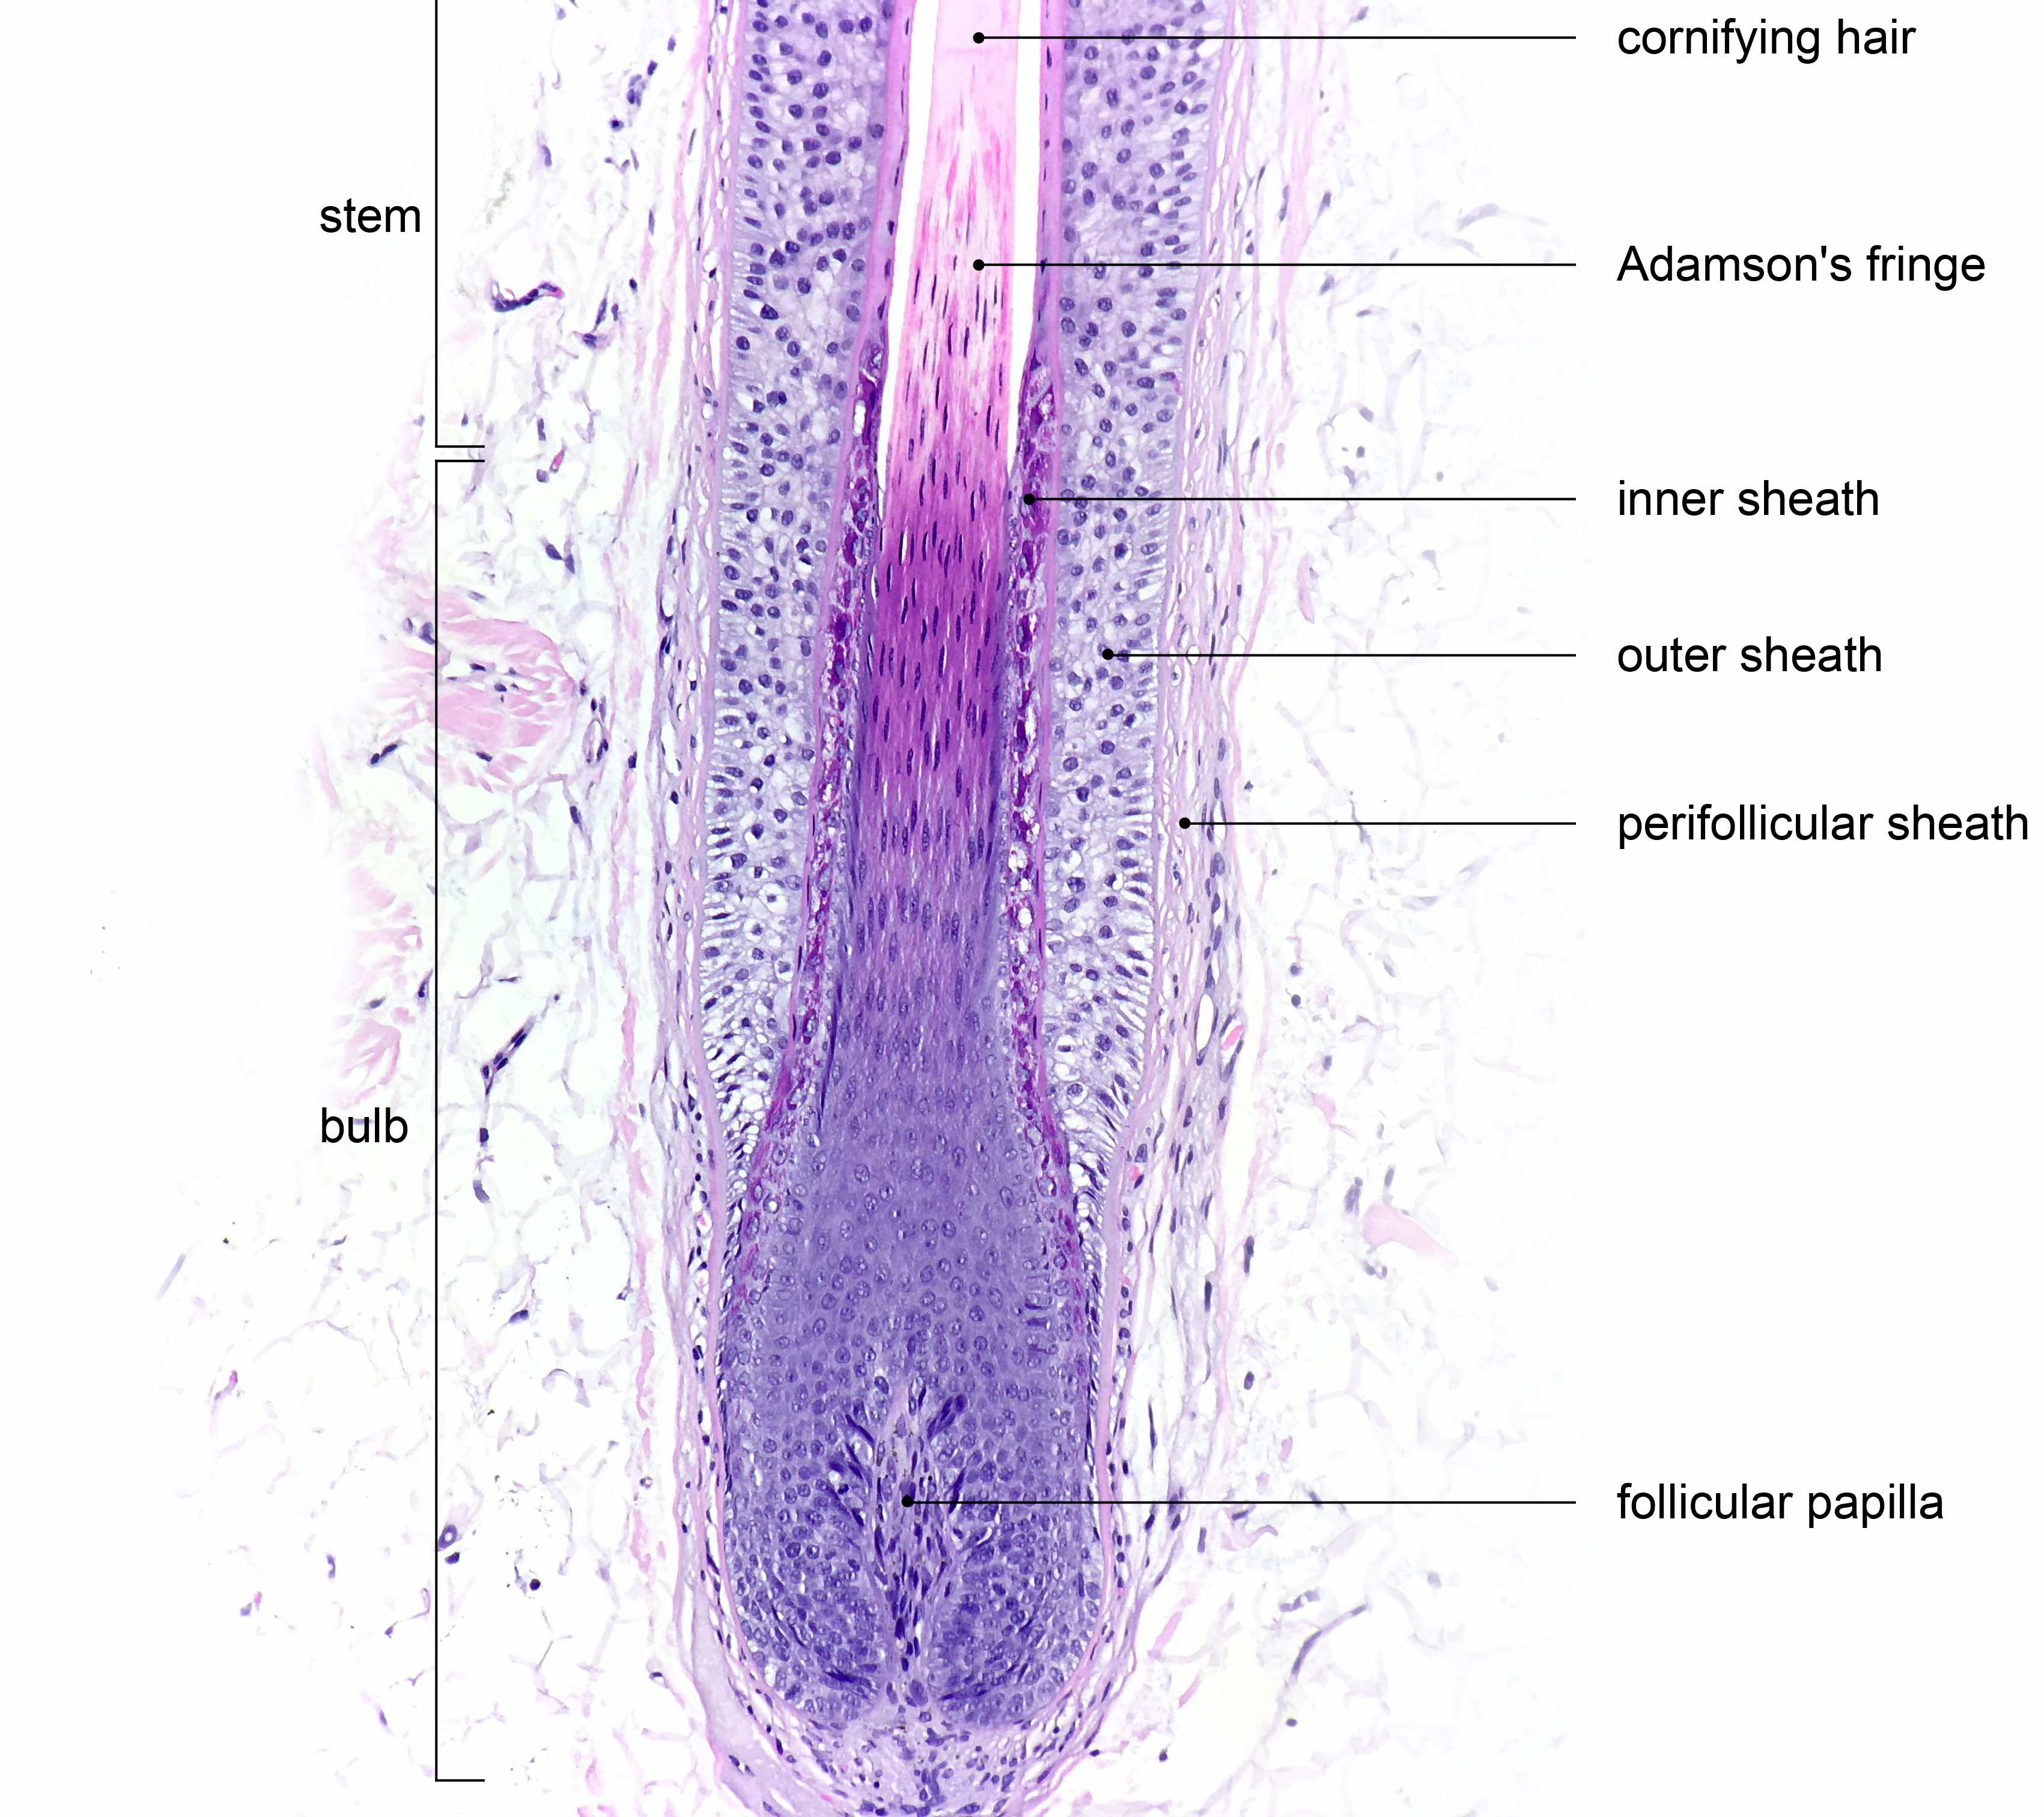 Layers of terminal anagen hair follicle